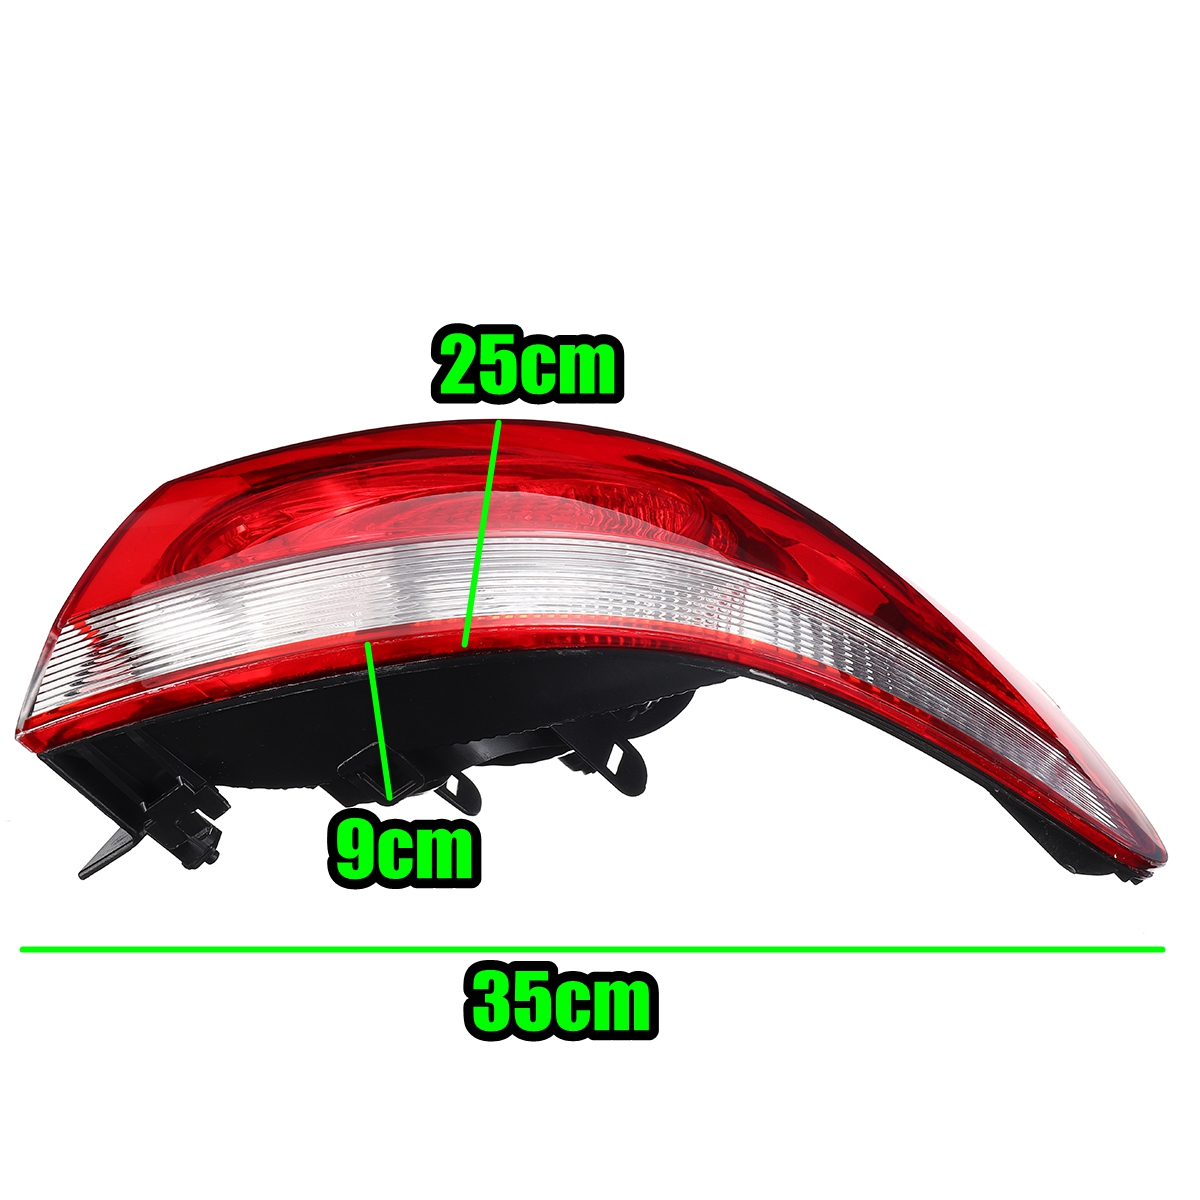 Car Rear Tail Brake Light Lamp Cover Left/Right without Bulb for VW Golf Mk6 Hatchback 2009-2013